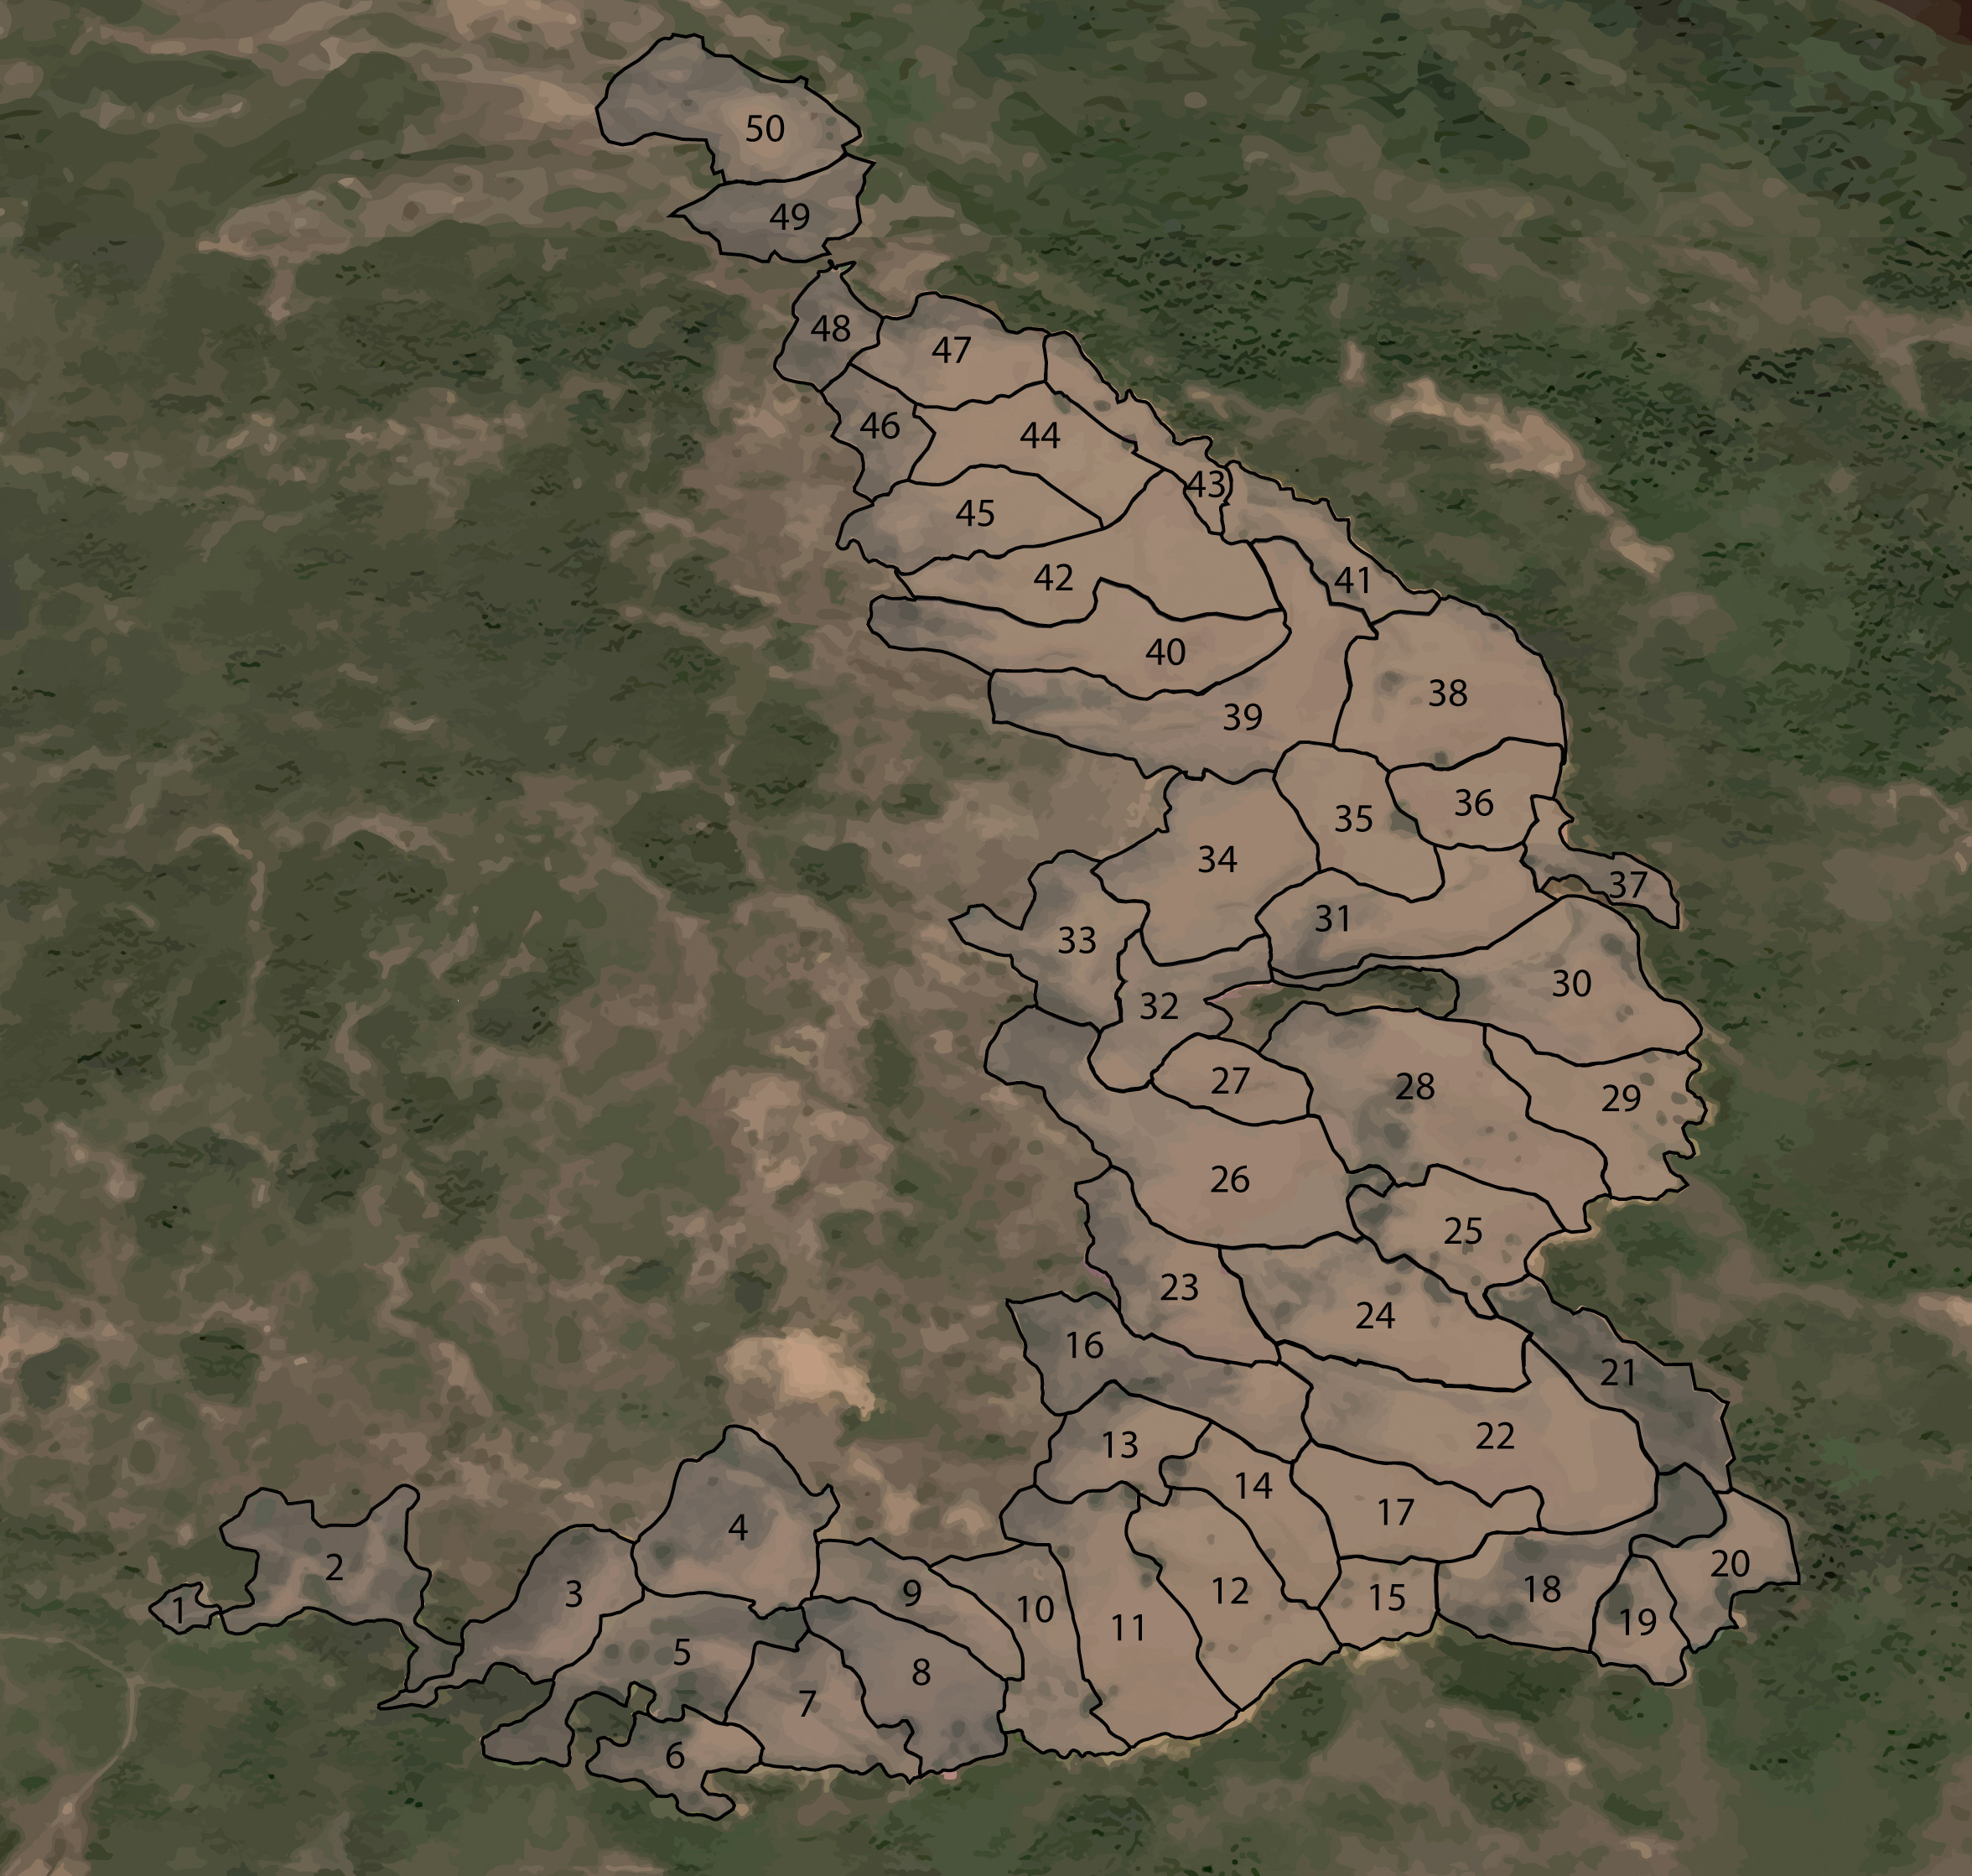 Fig 3.  Google Earth image showing the boundaries of the 50 swales for which population estimates were conducted.